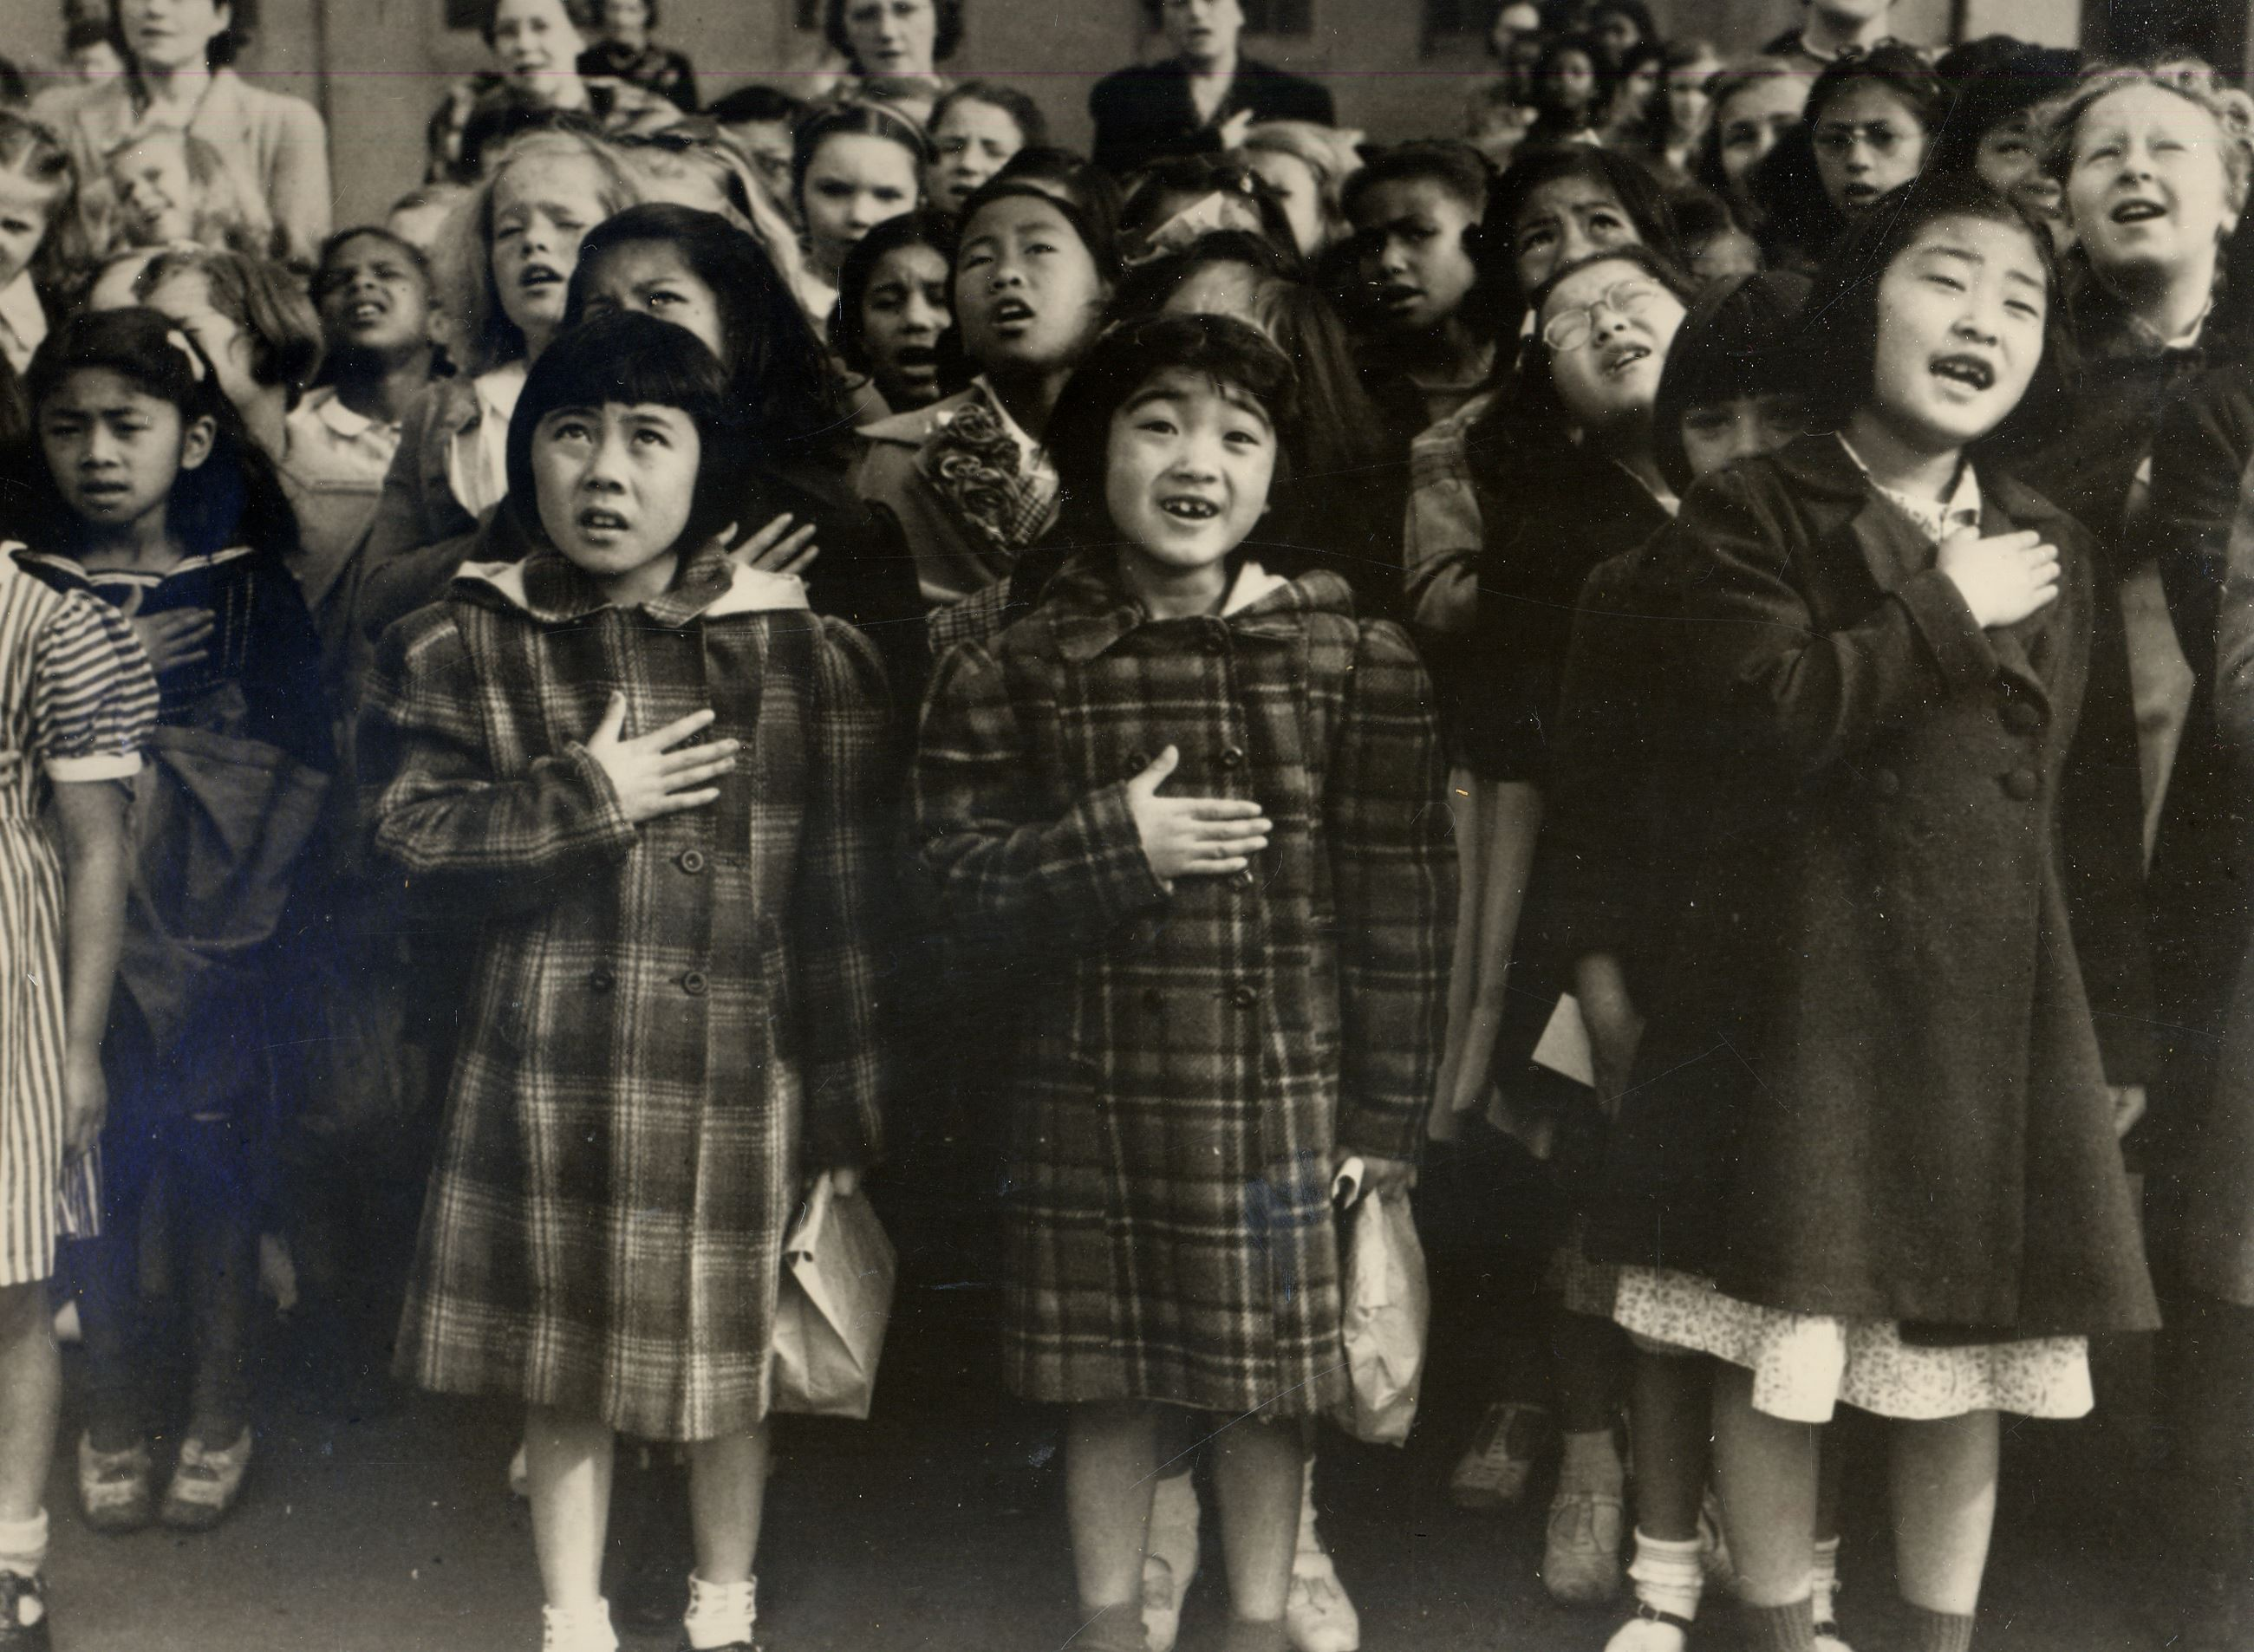 image of Japanese girls at Heart Mountain internment camp in the 1940s